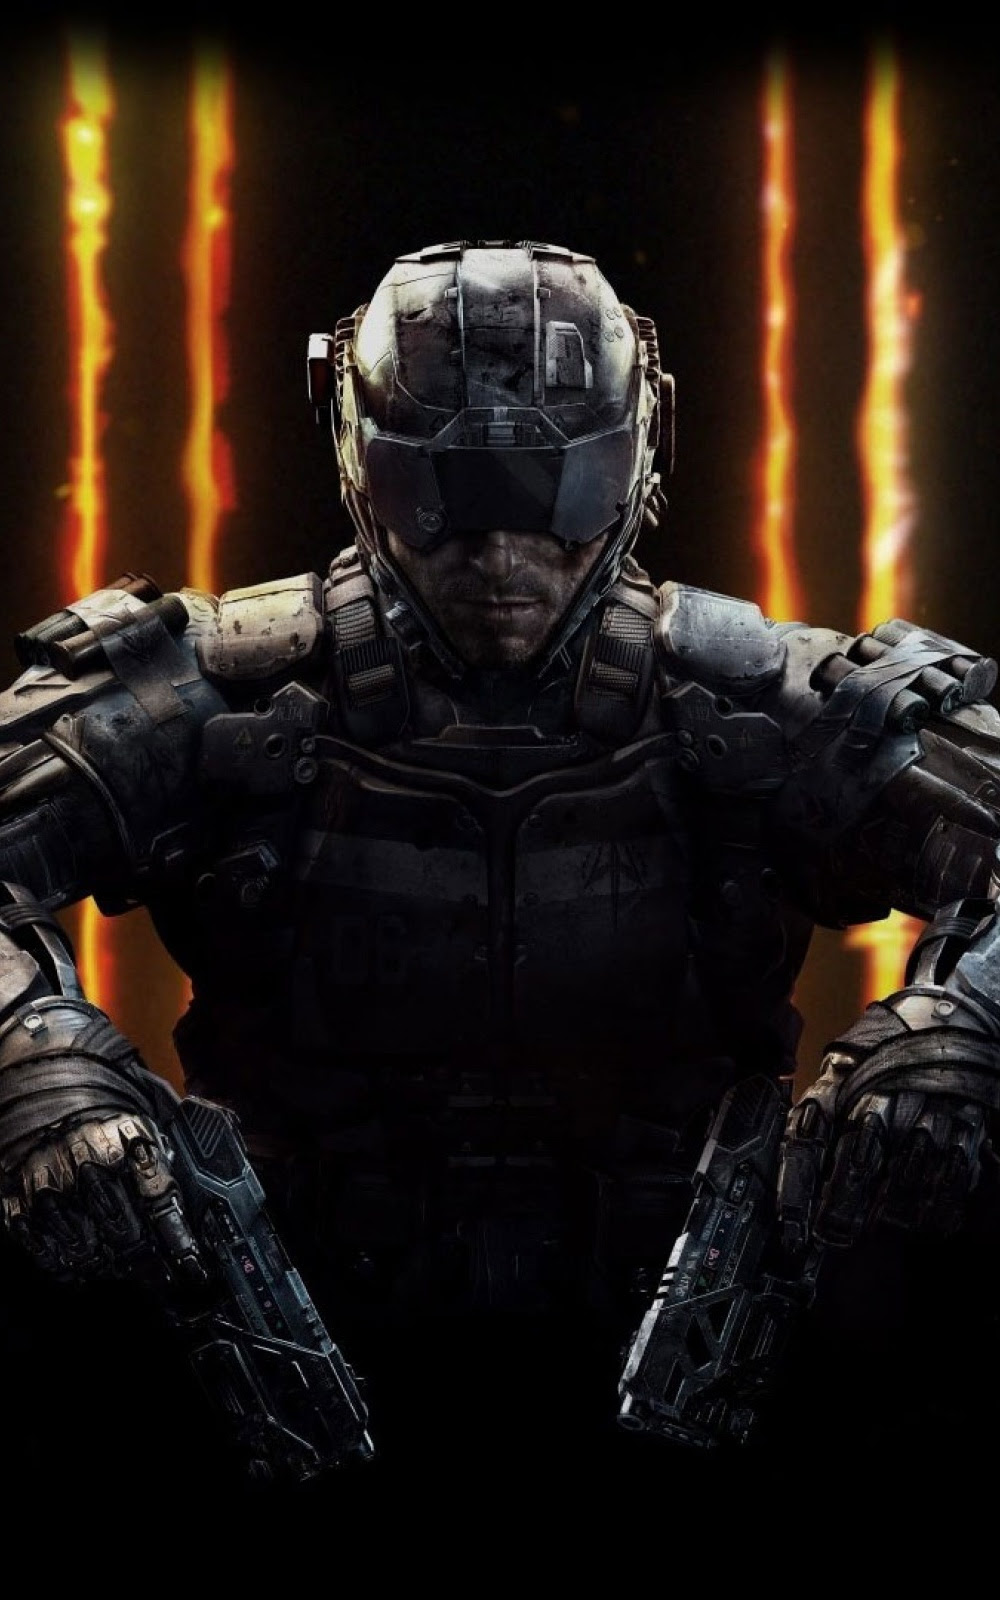 Call Of Duty Black Ops 3 Mobile Wallpaper Mobiles Wall